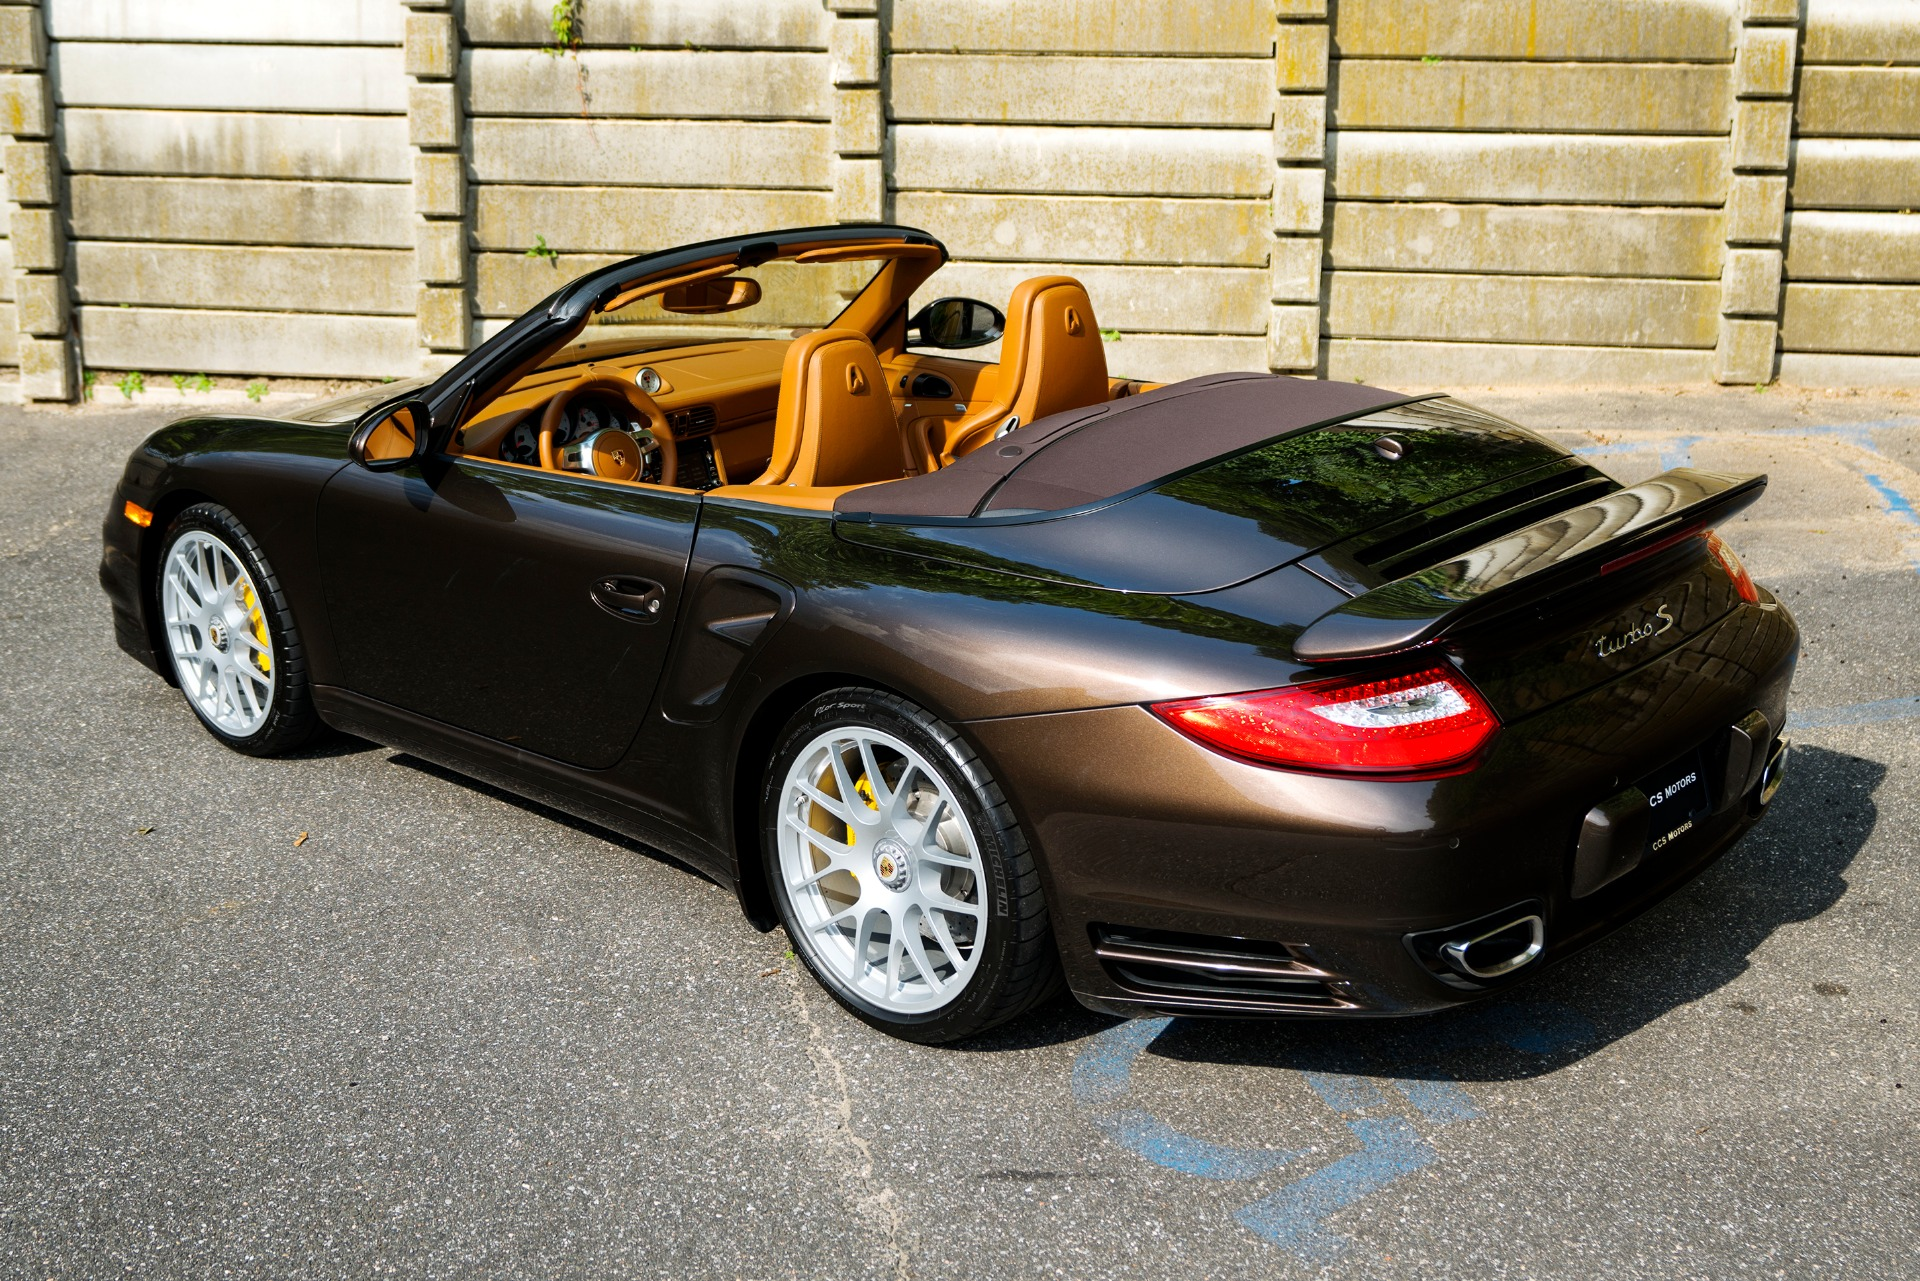 2011 porsche 911 turbo s cabriolet stock 1408 for sale near oyster bay ny ny porsche dealer. Black Bedroom Furniture Sets. Home Design Ideas